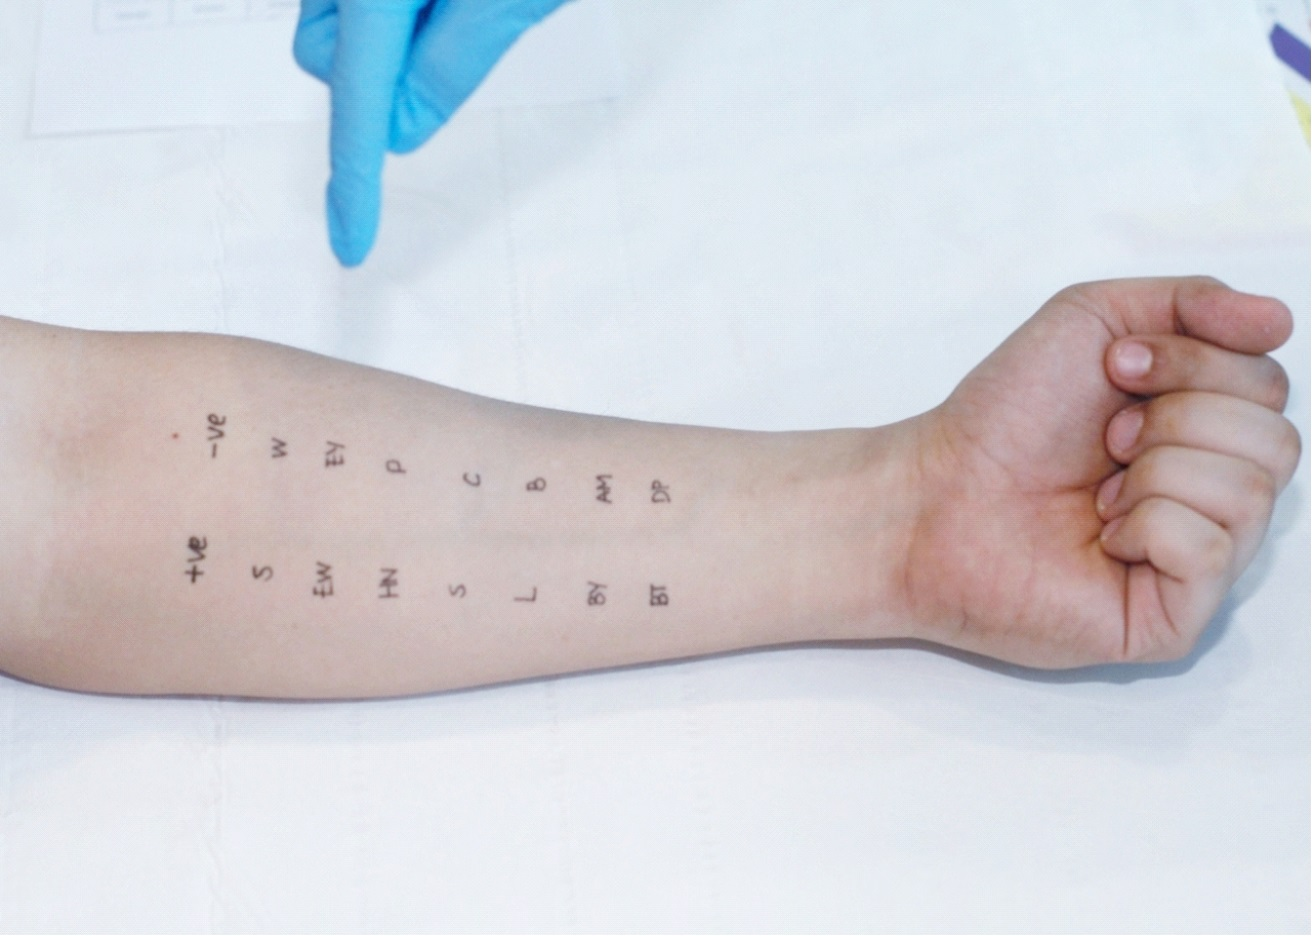 Picture of suspected allergen written on patient's arm for skin prick test